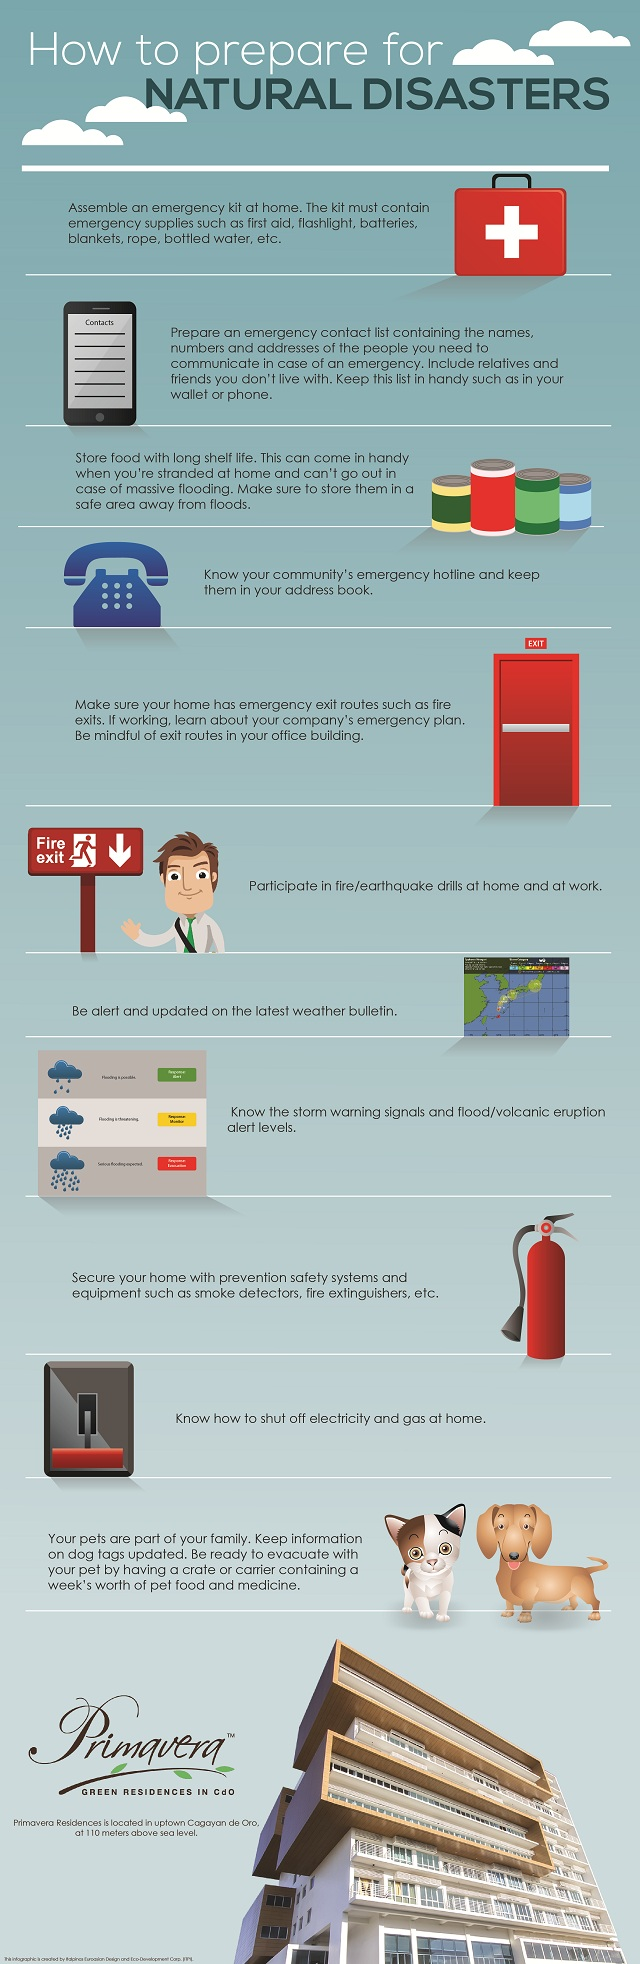 How to Prepare for Natural Disasters_infographic_resized